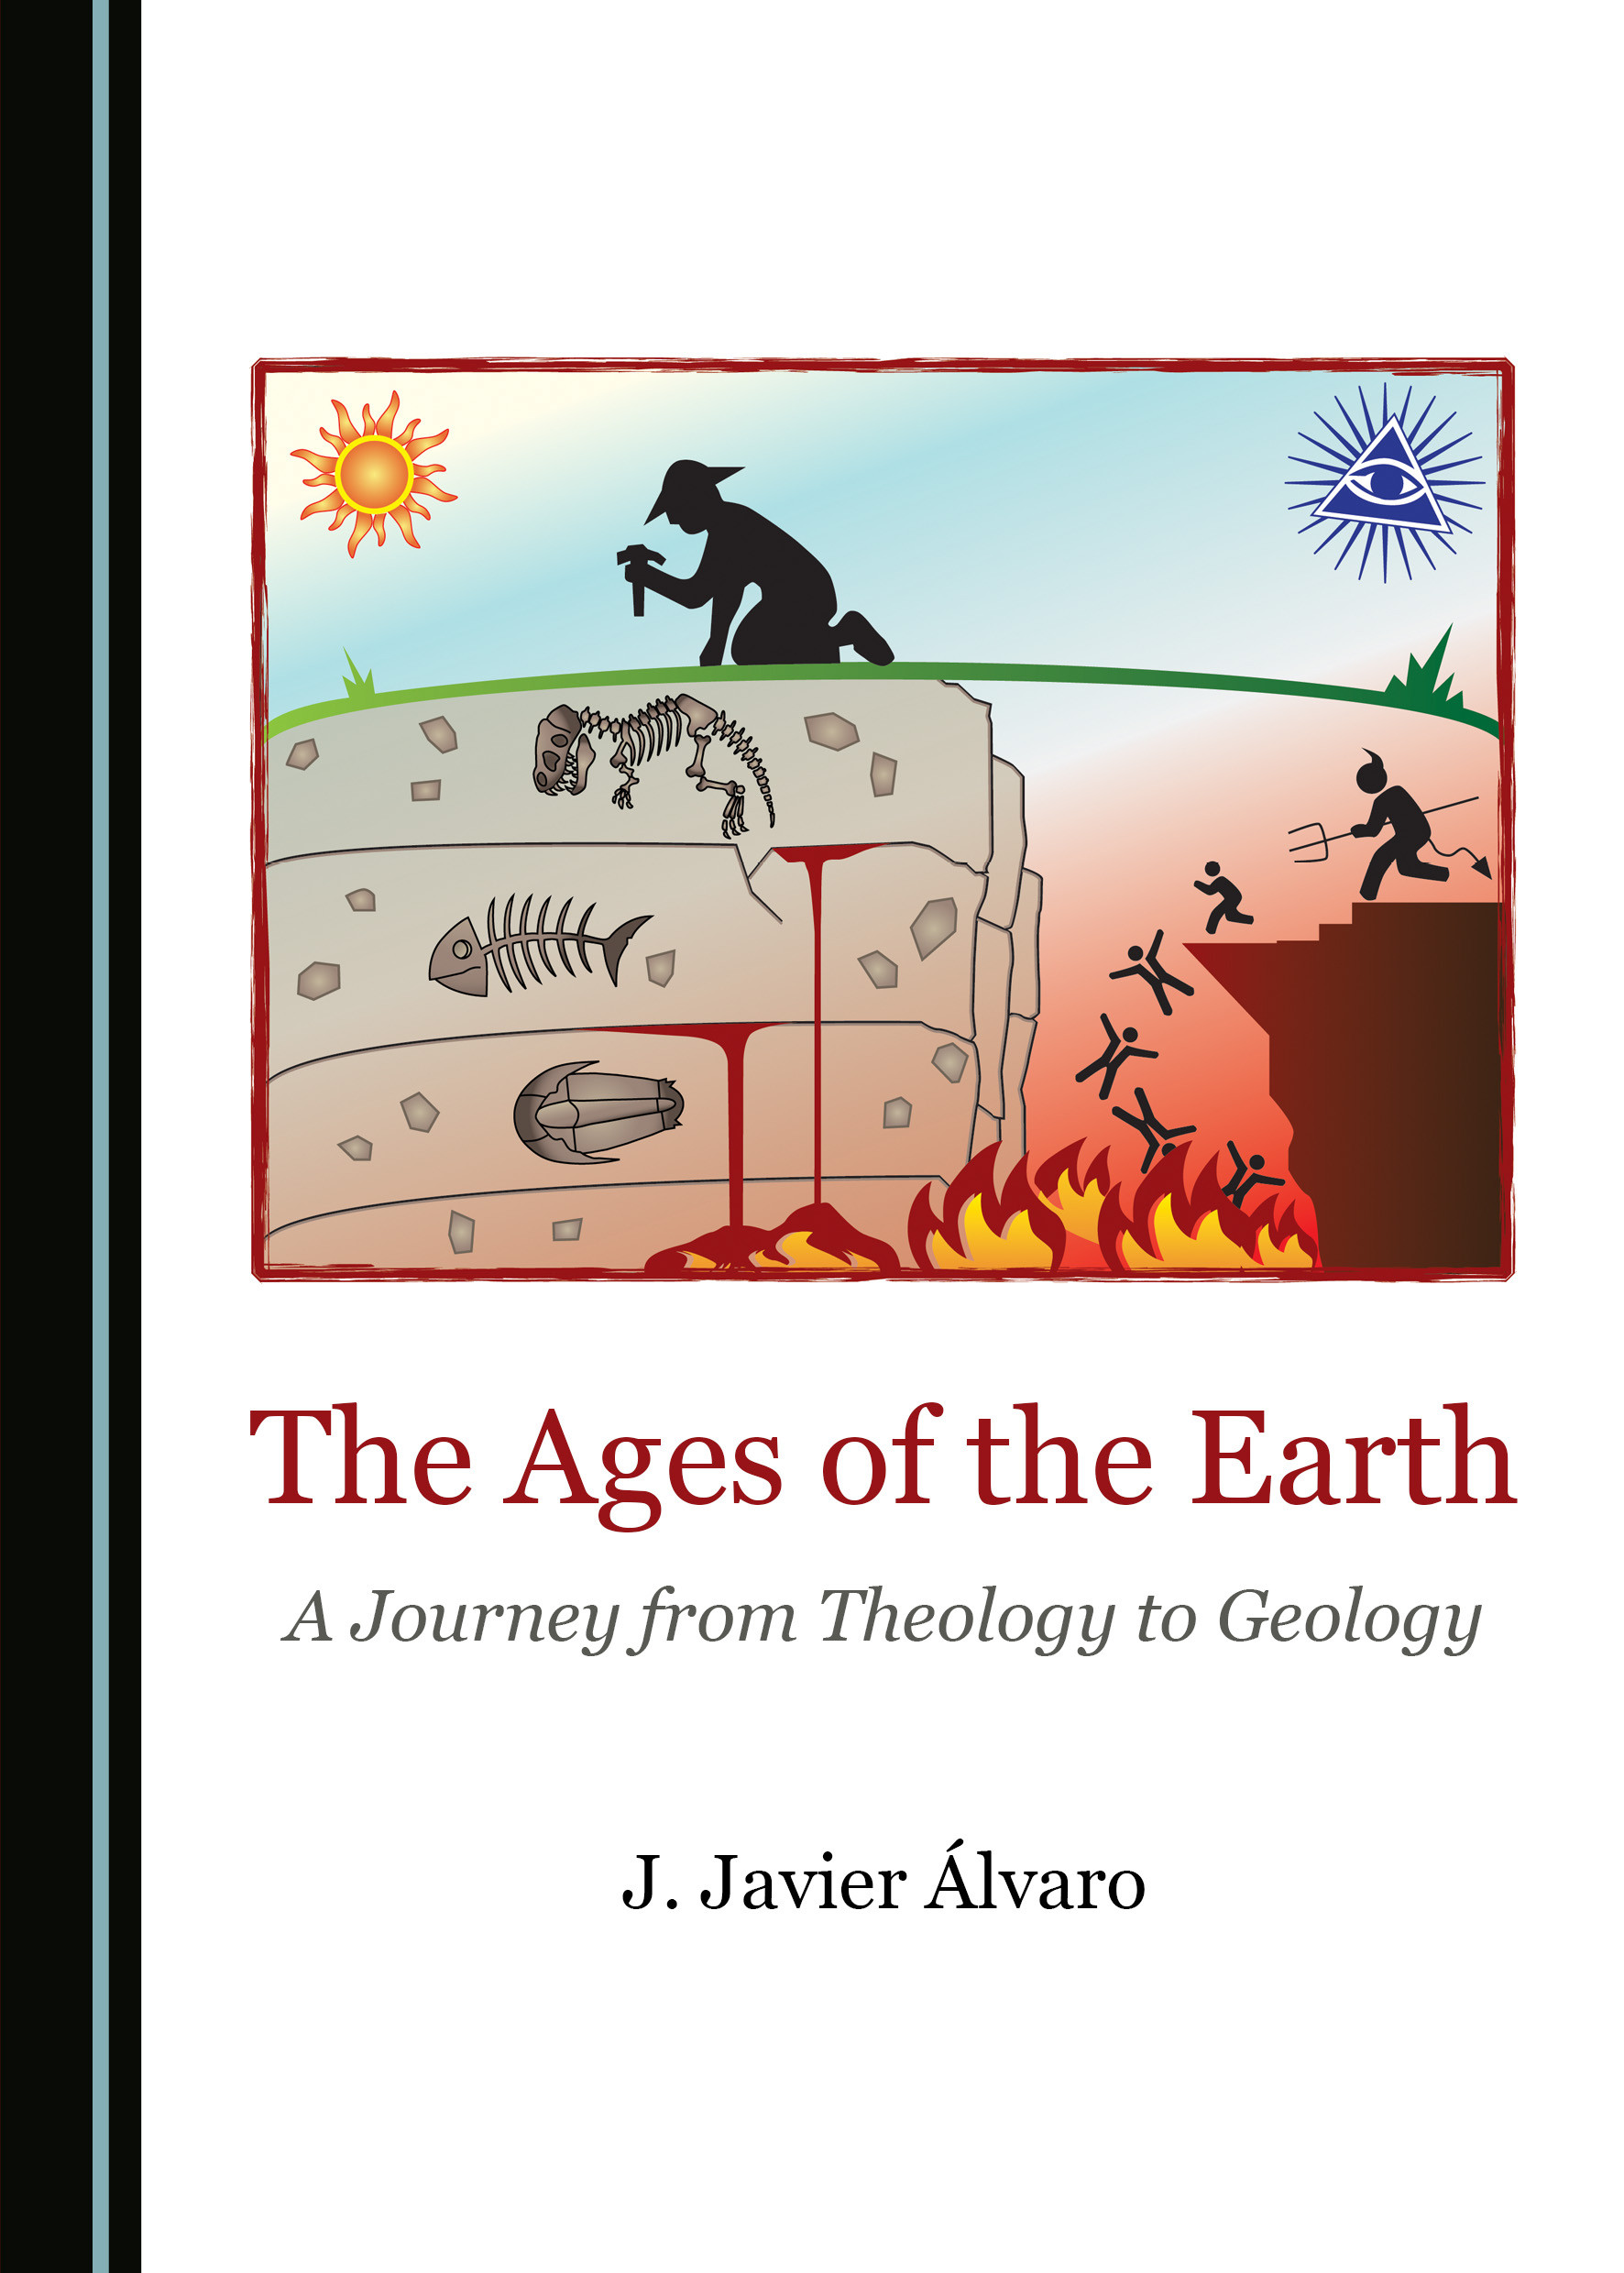 The Ages of the Earth: A Journey from Theology to Geology